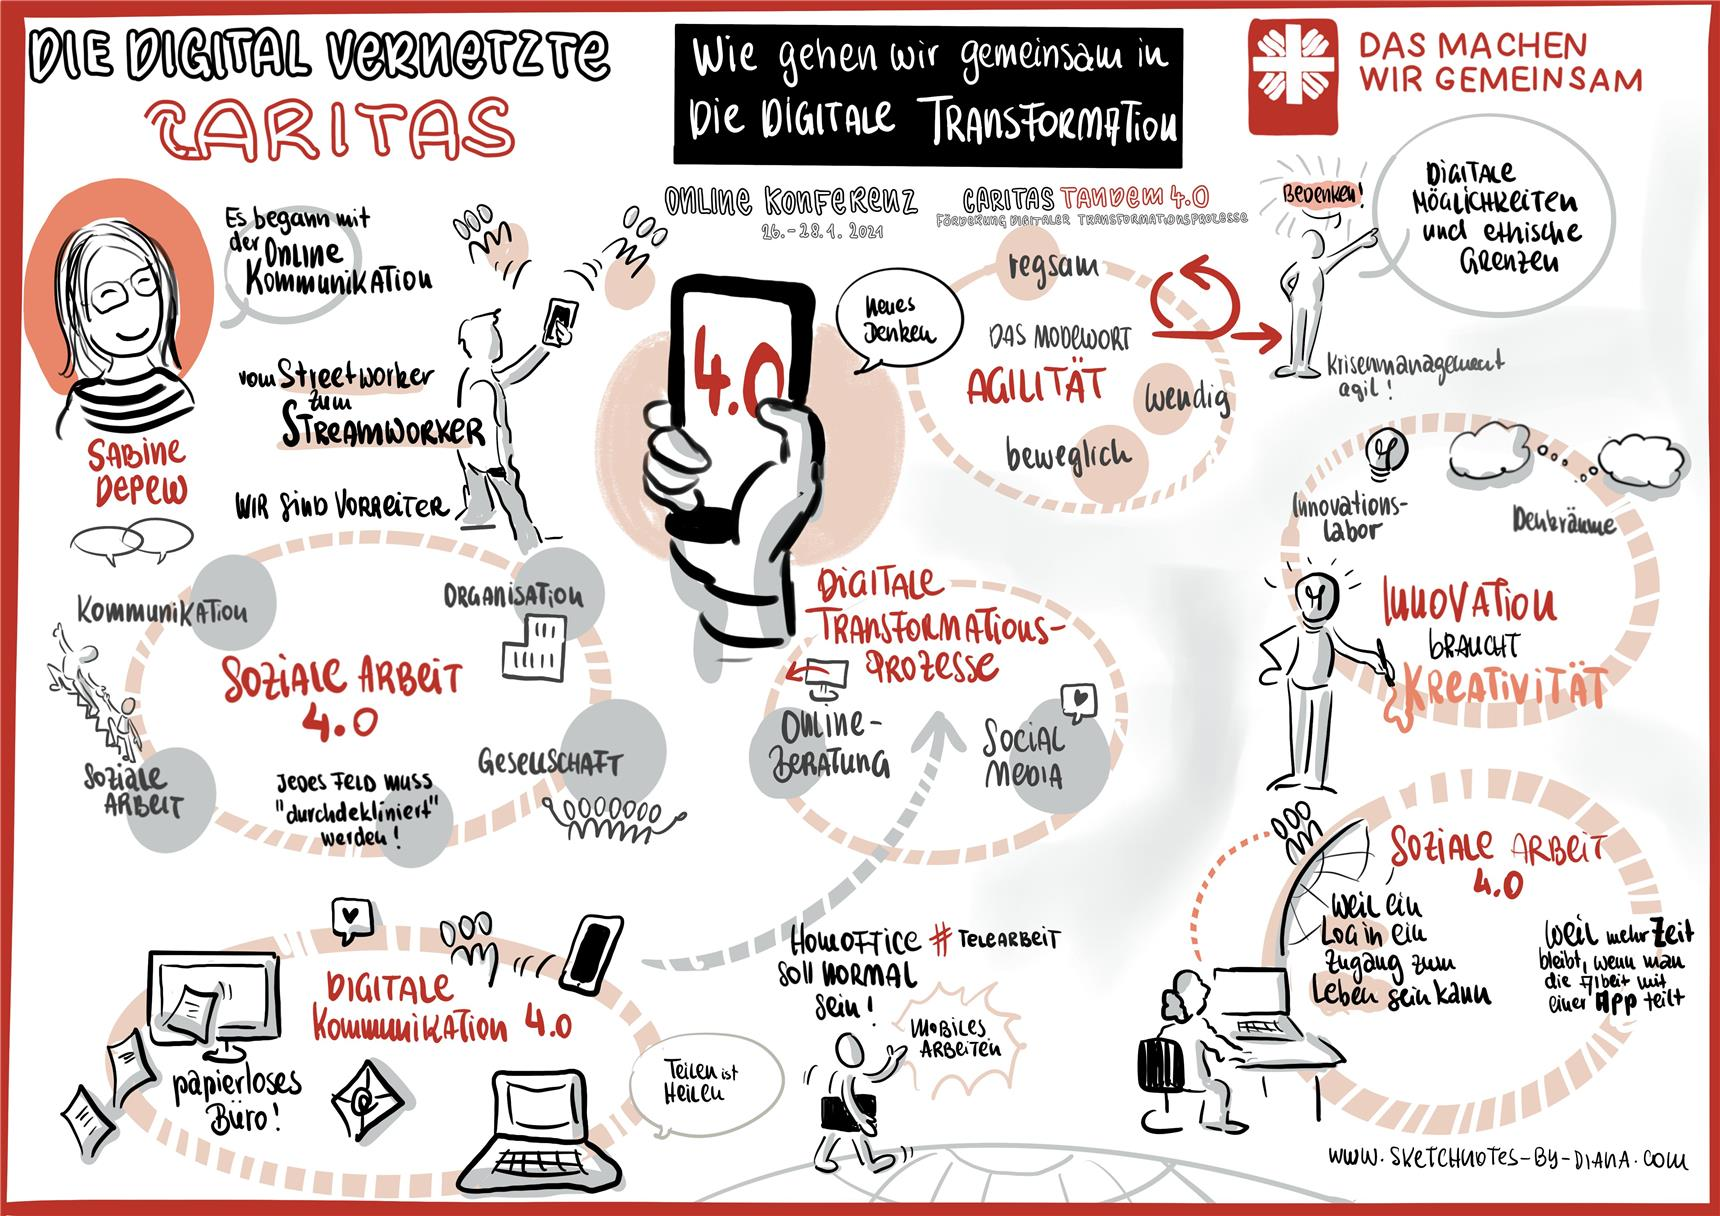 Infografik zum Thema digitale Transformation